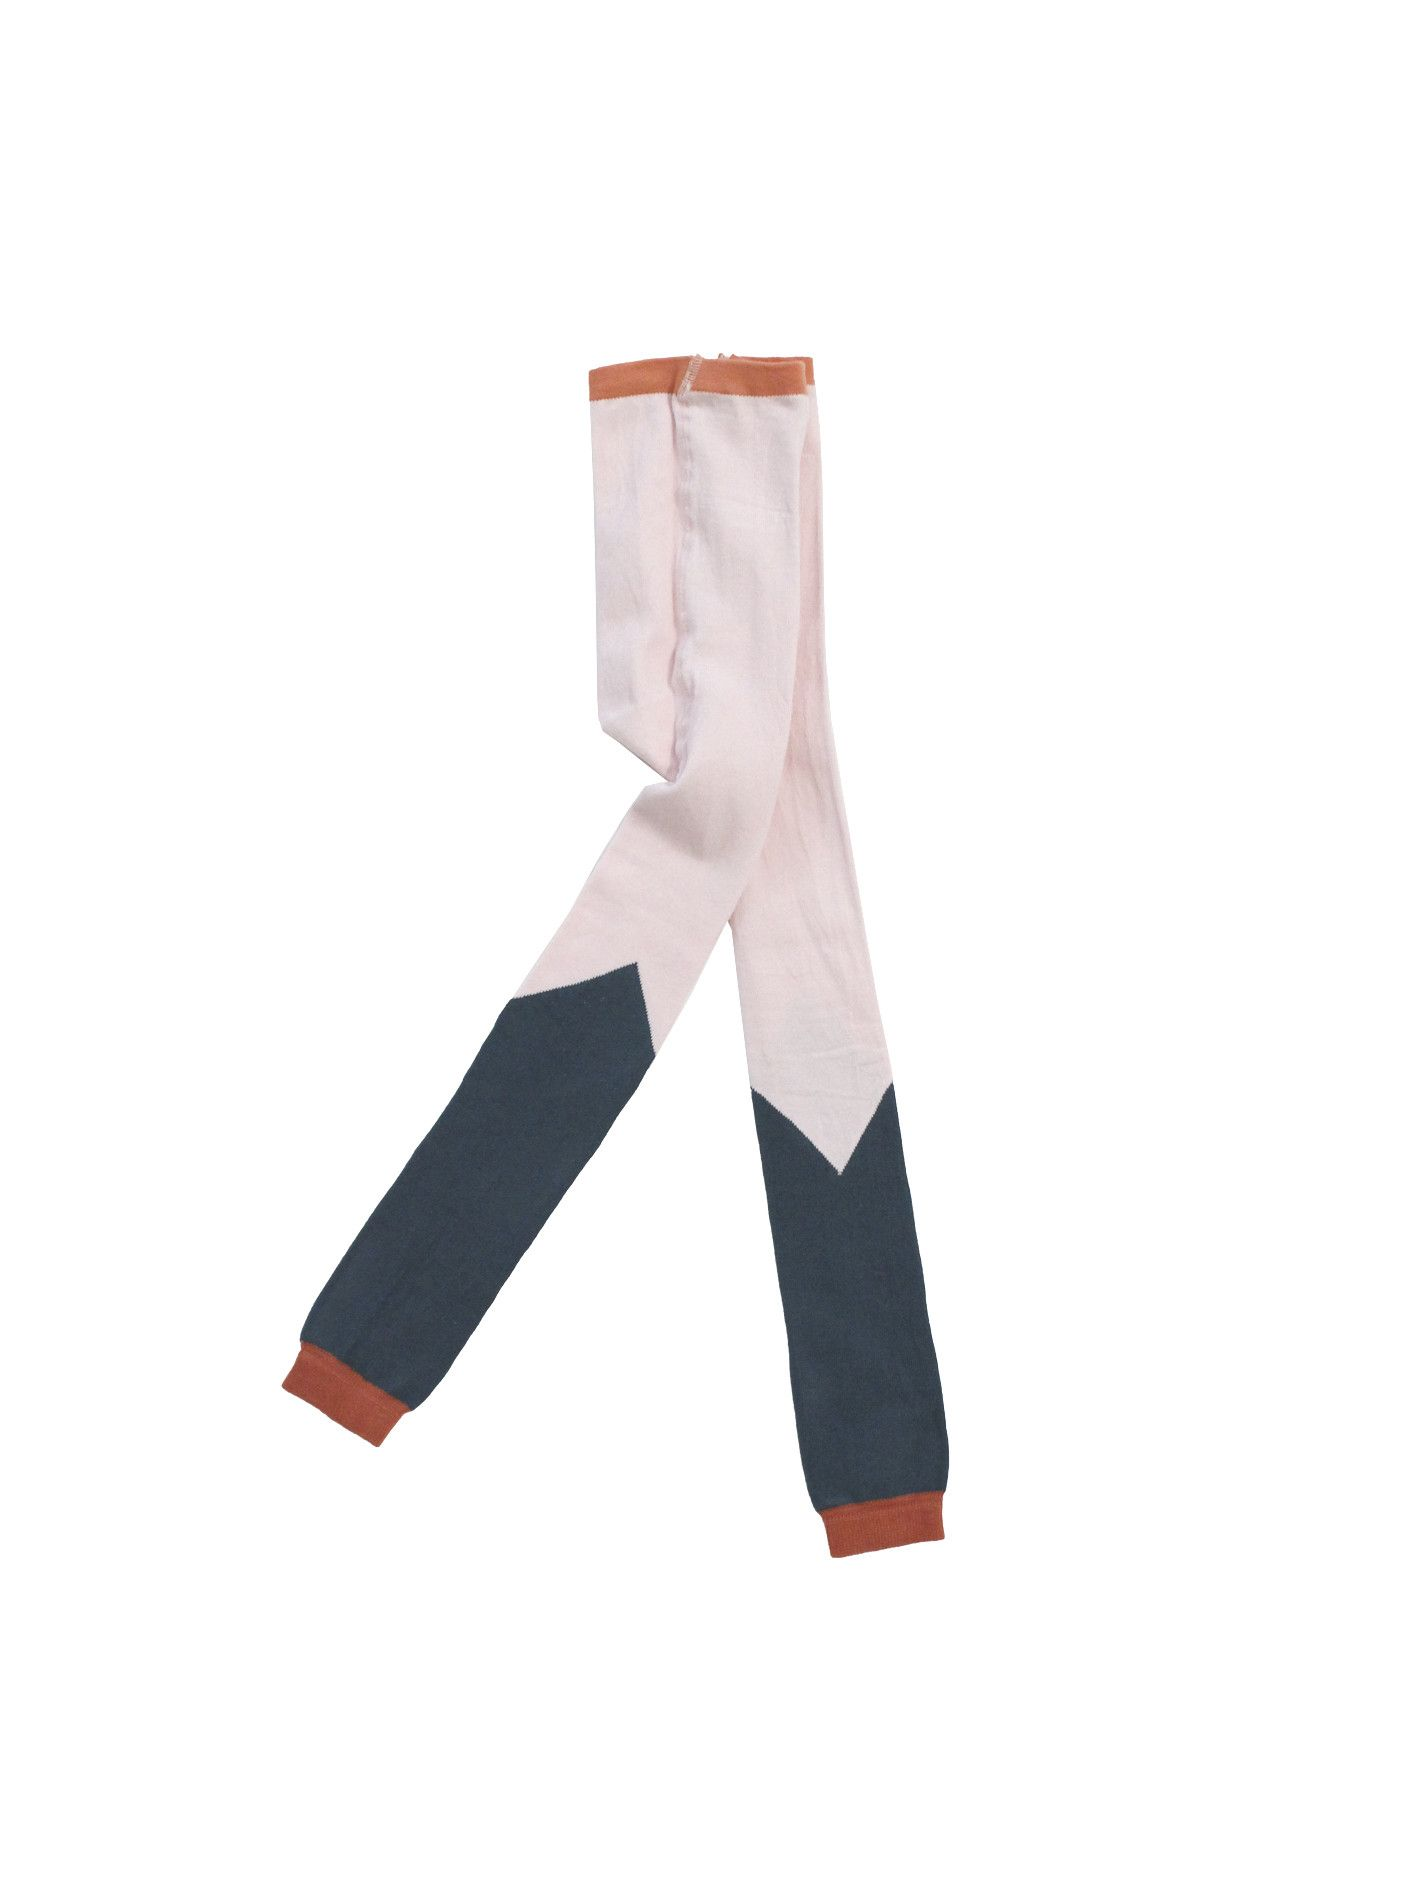 Sale - Checked Leggings - Tinycottons Tiny Cottons r3ryXaenZ